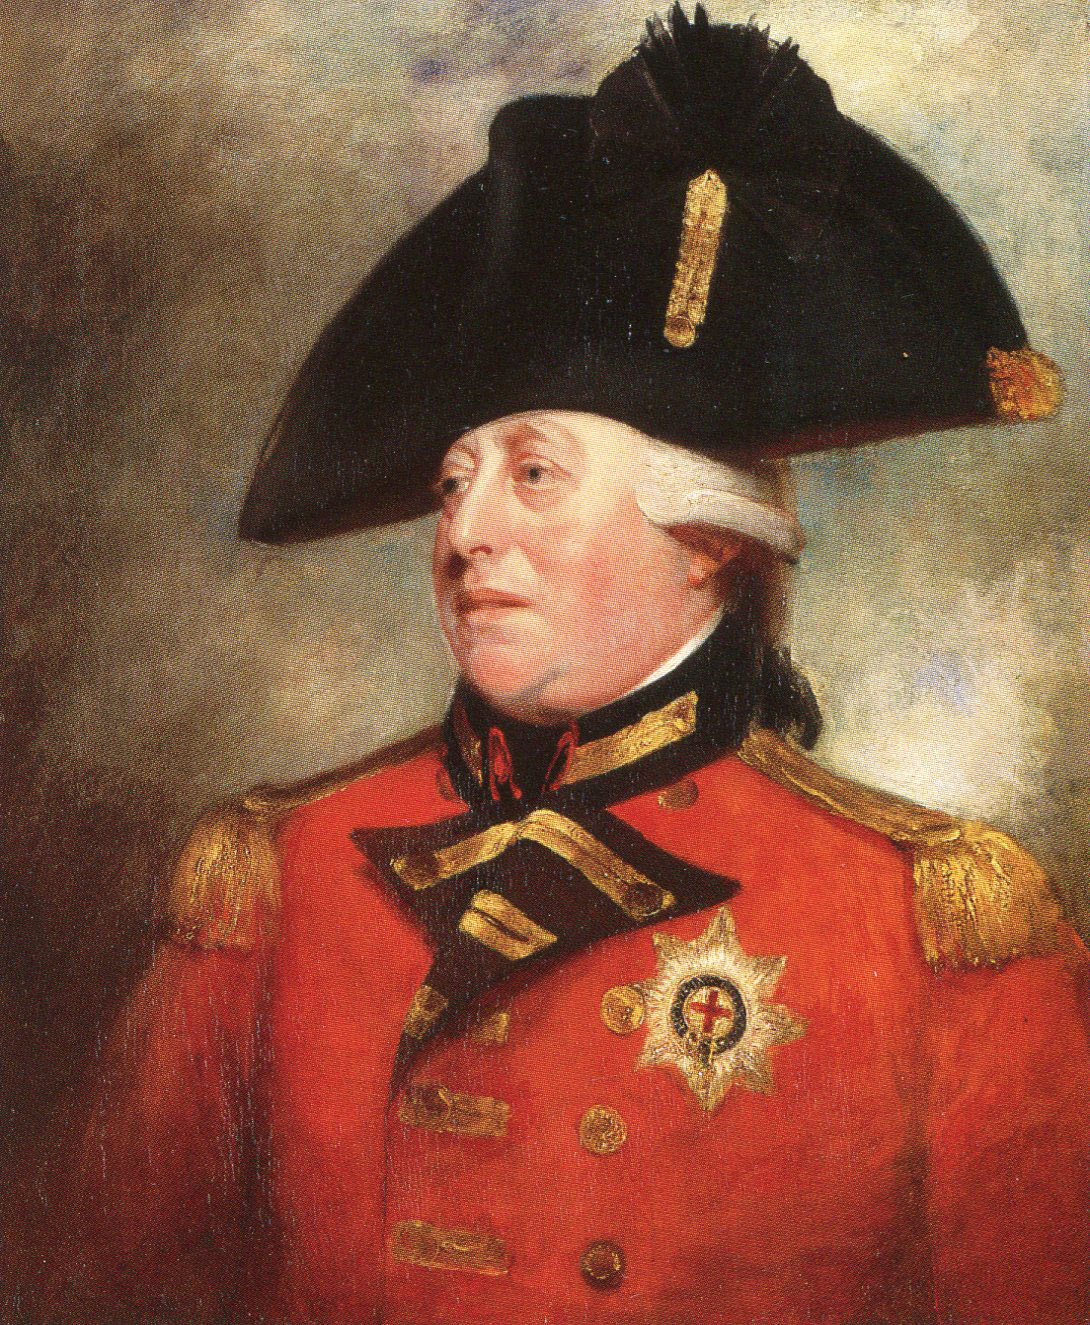 King George III Picture By Sir William Beechey Click Here To Buy This